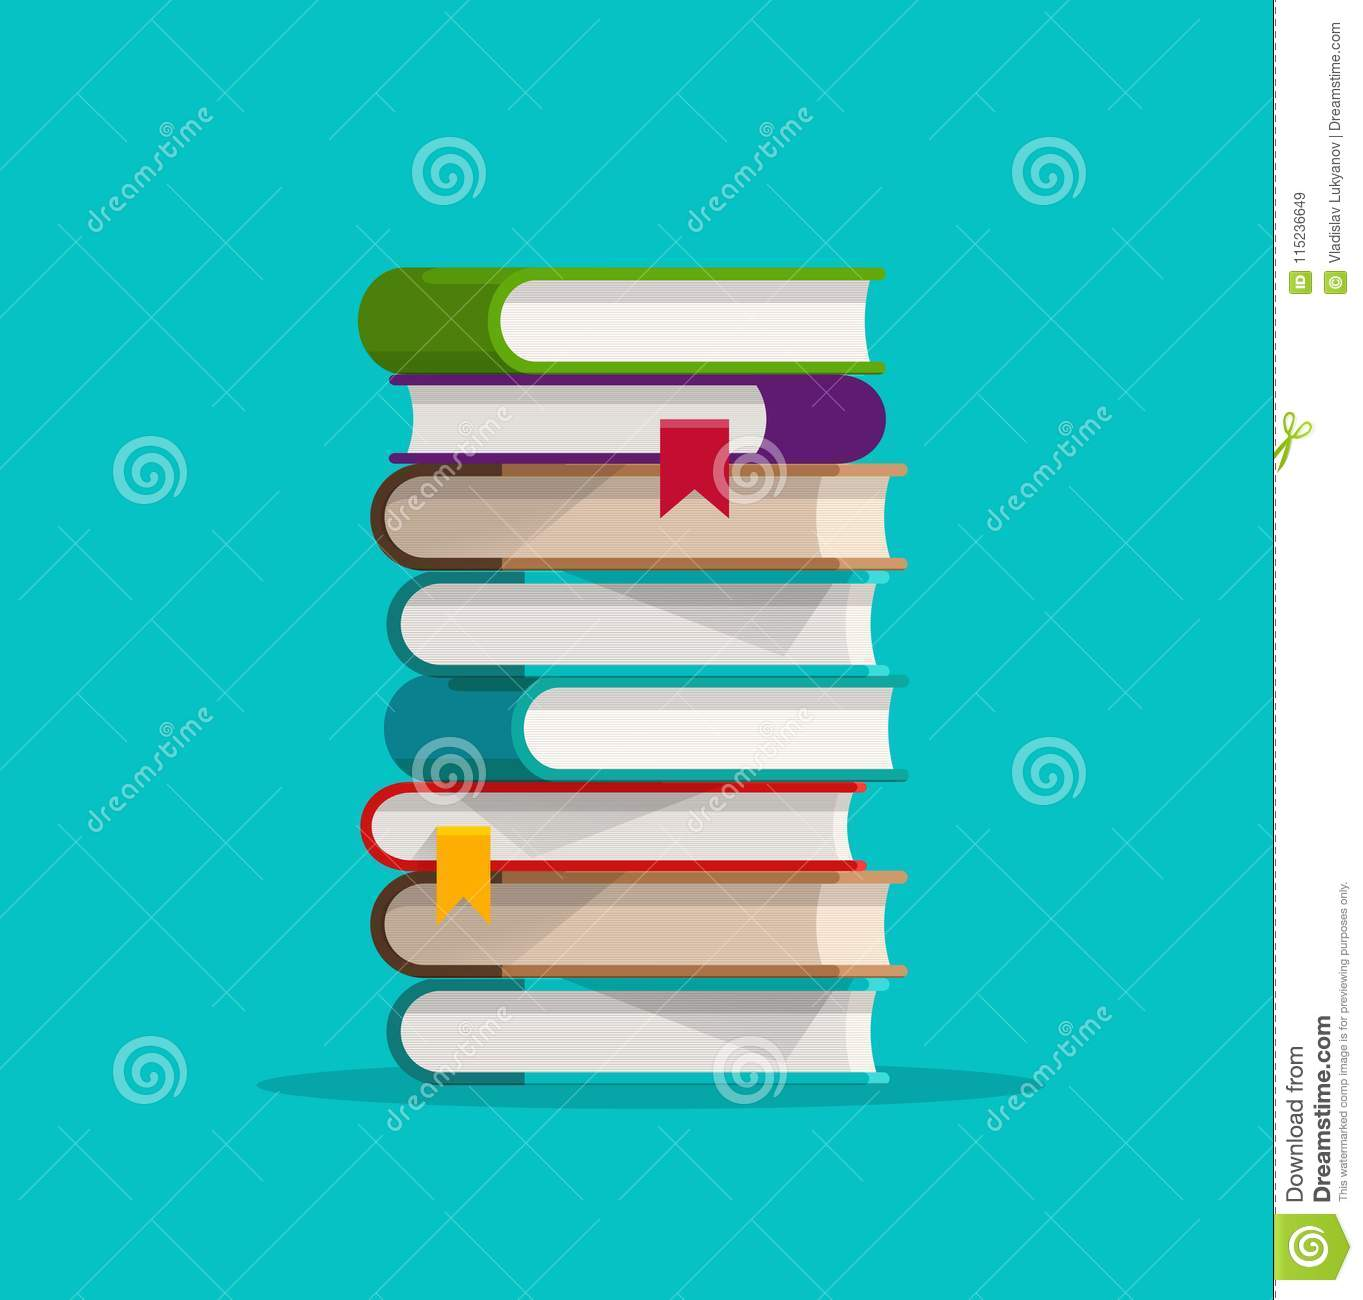 Books Stack Or Pile Vector Illustration, Flat Cartoon Paper Book.